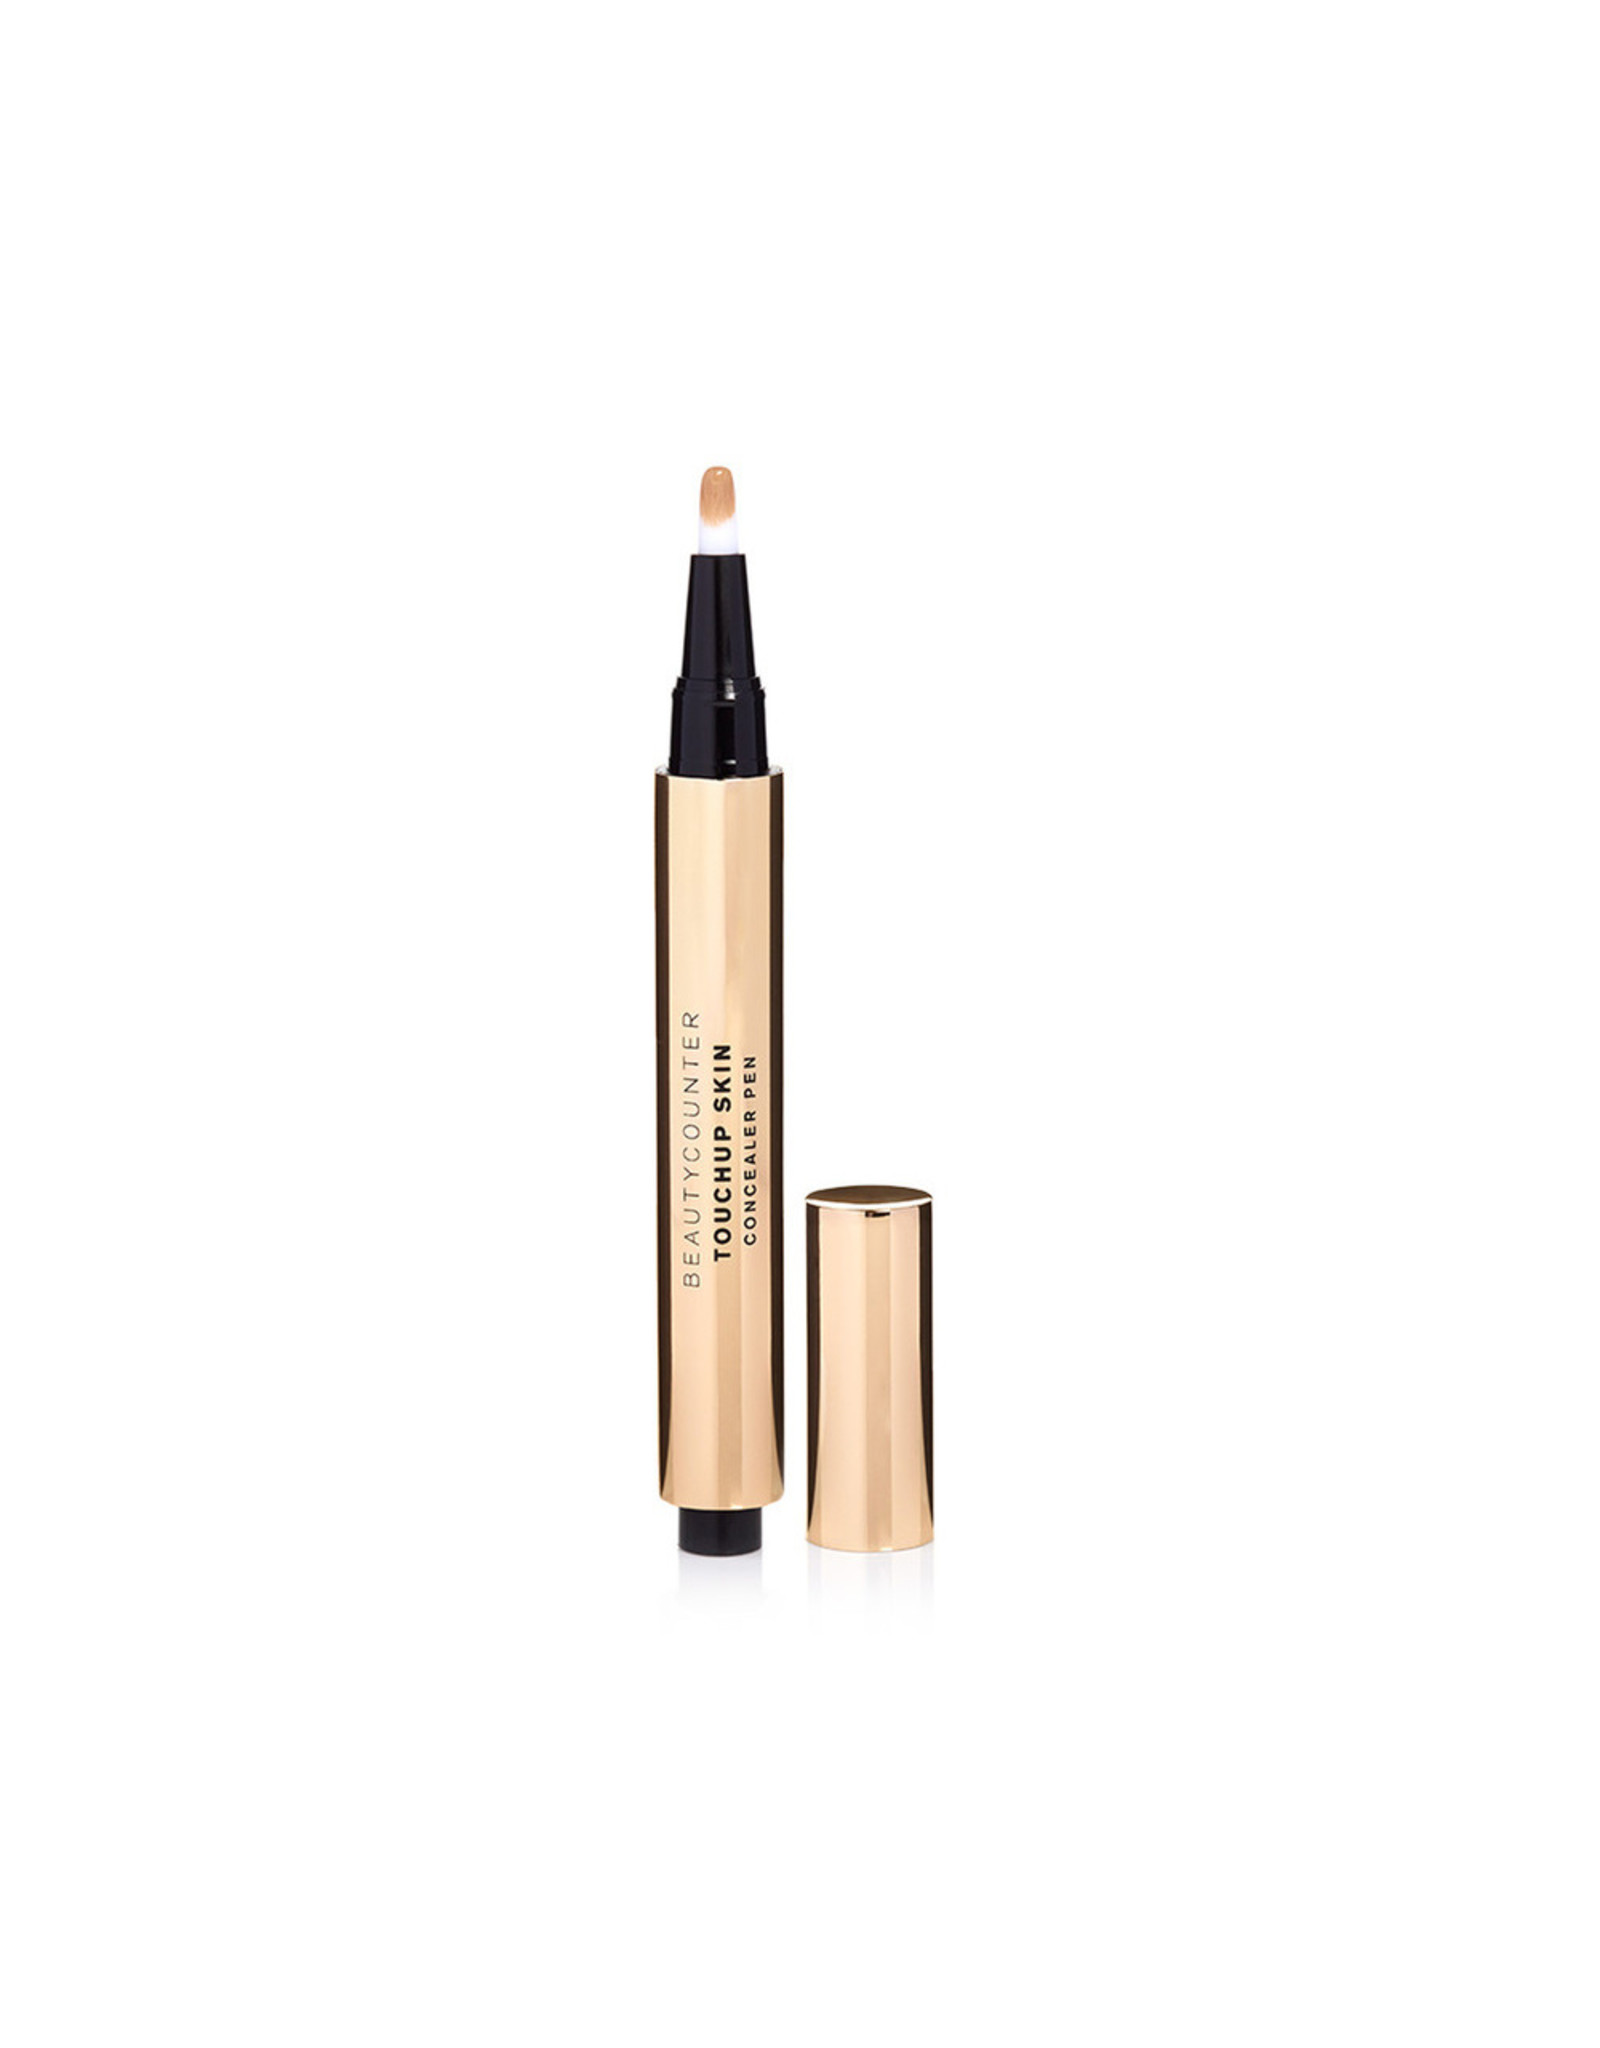 Beautycounter Beautycounter Touchup Skin Concealer Pen (Color: Medium 1)